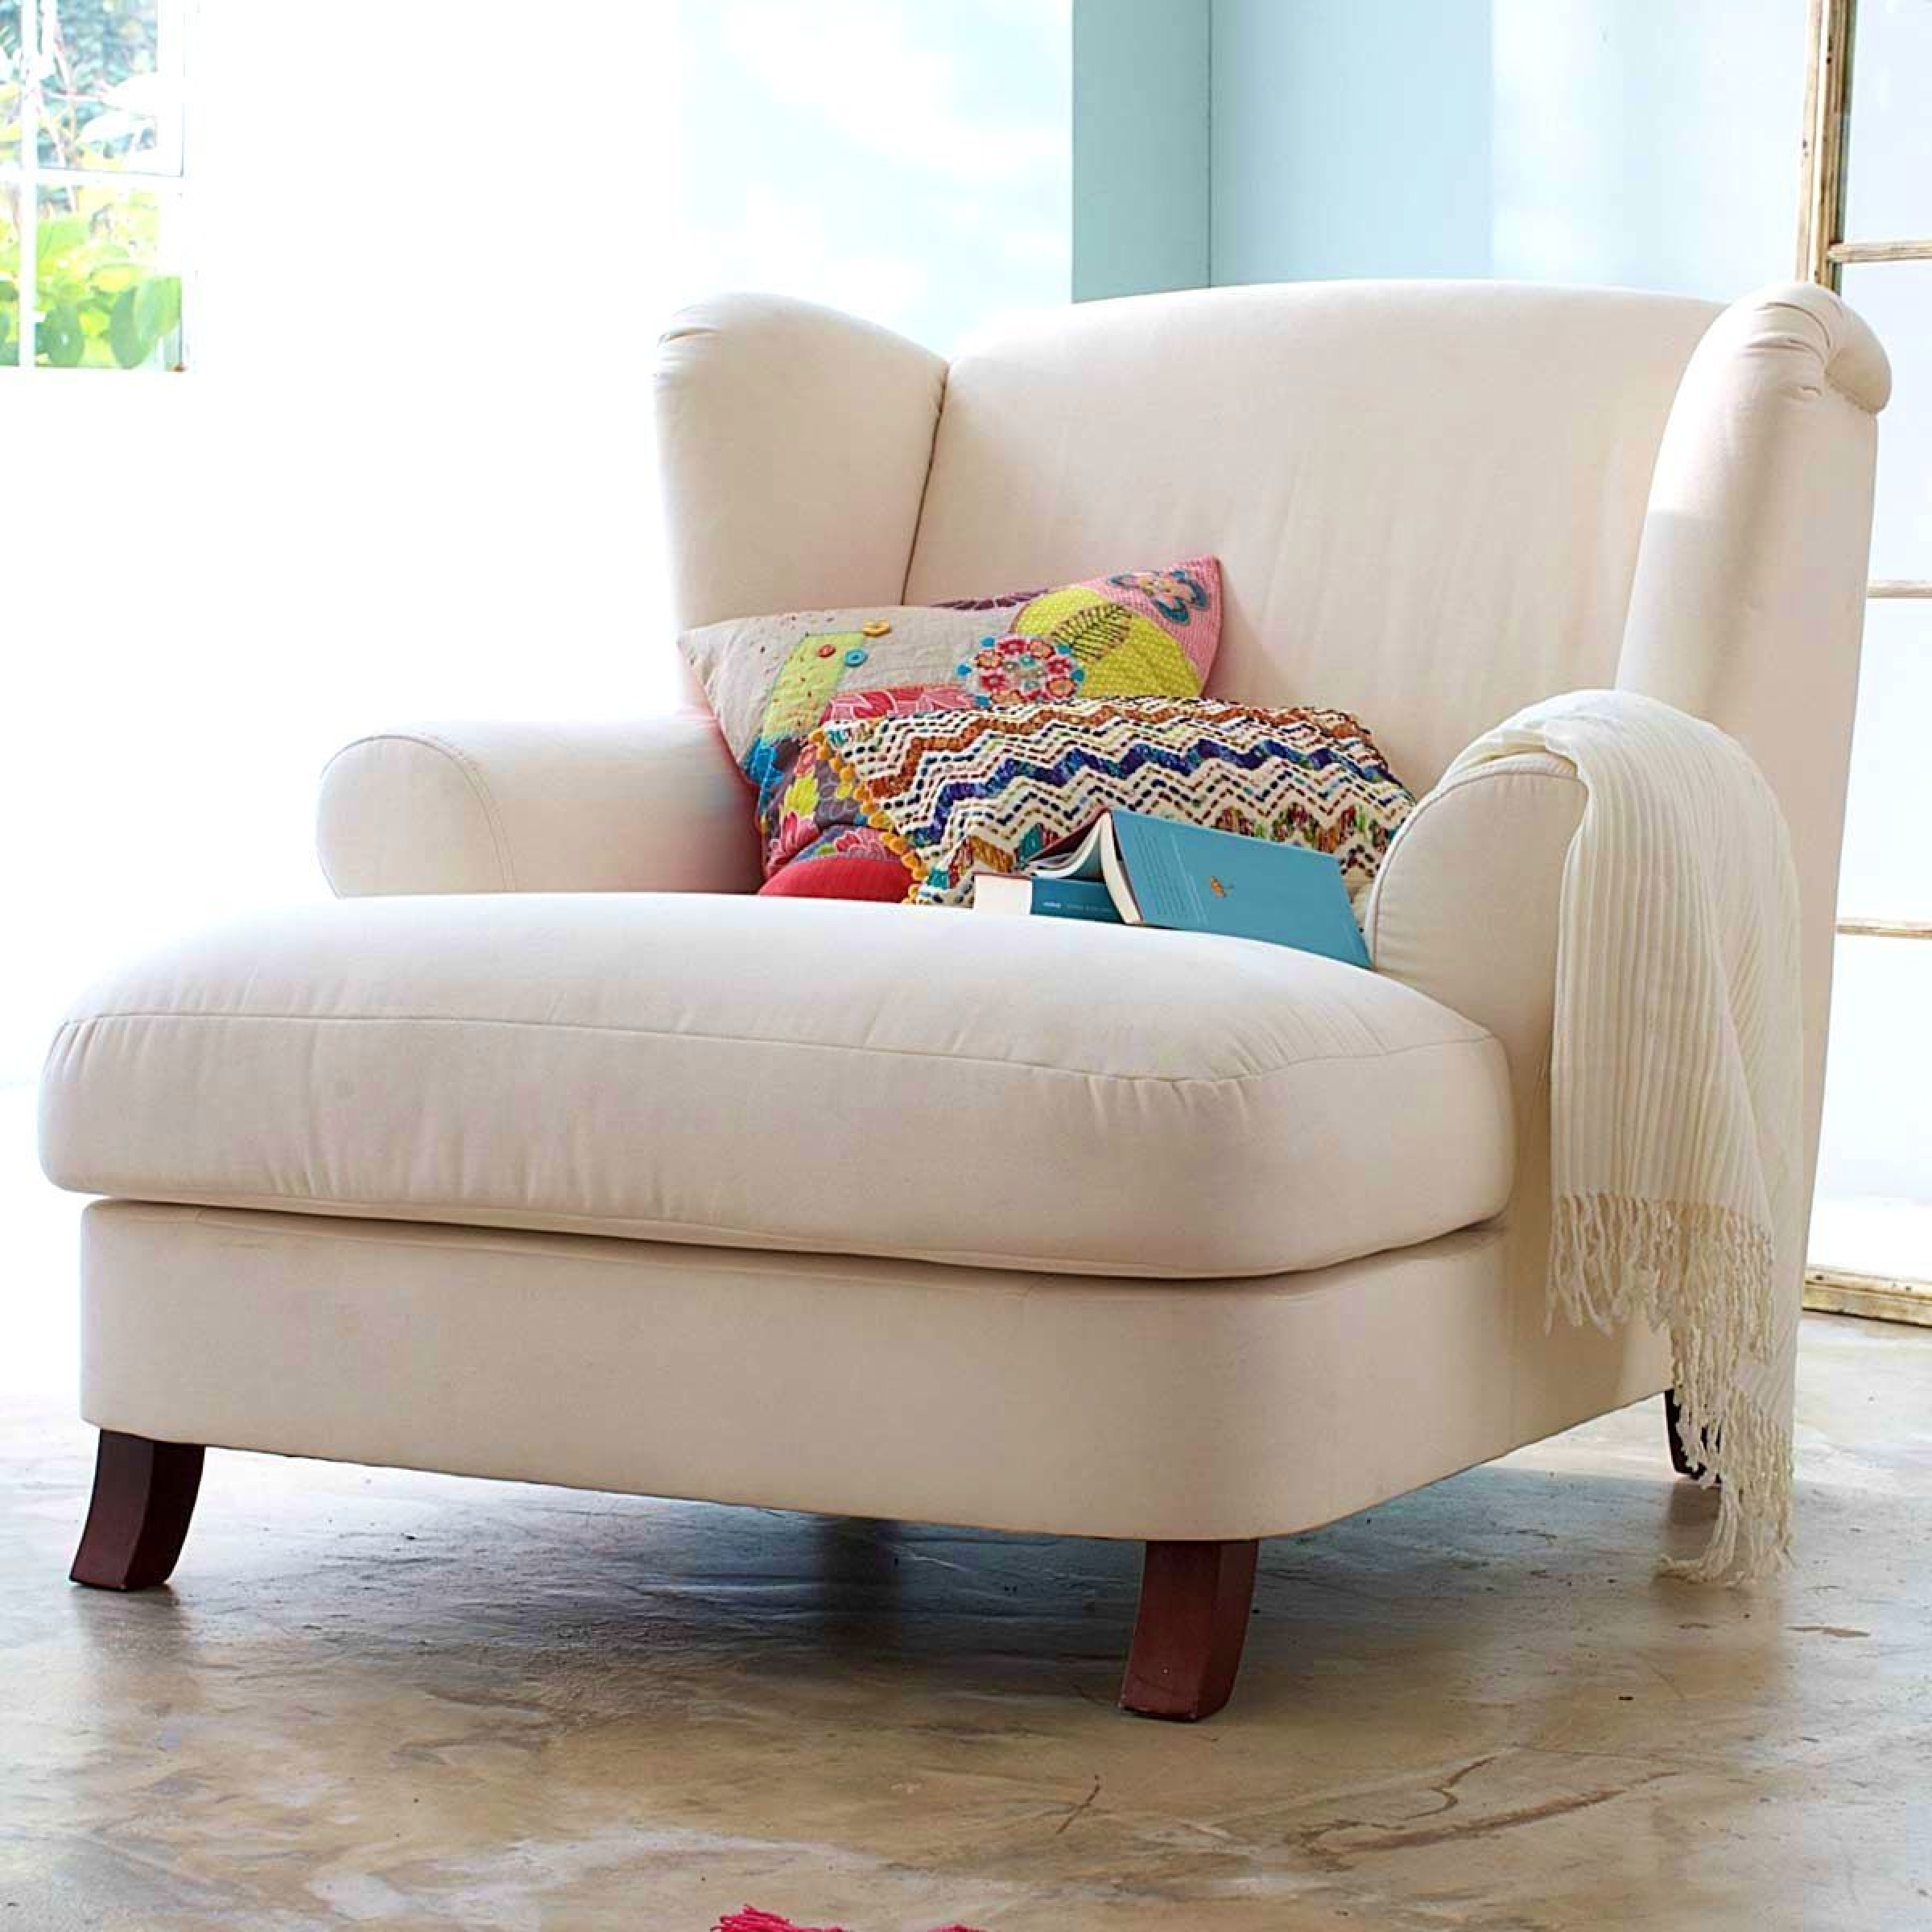 50+ Comfy Chairs For Bedroom You'll Love in 2020 - Visual Hunt on Comfy Bedroom  id=25334